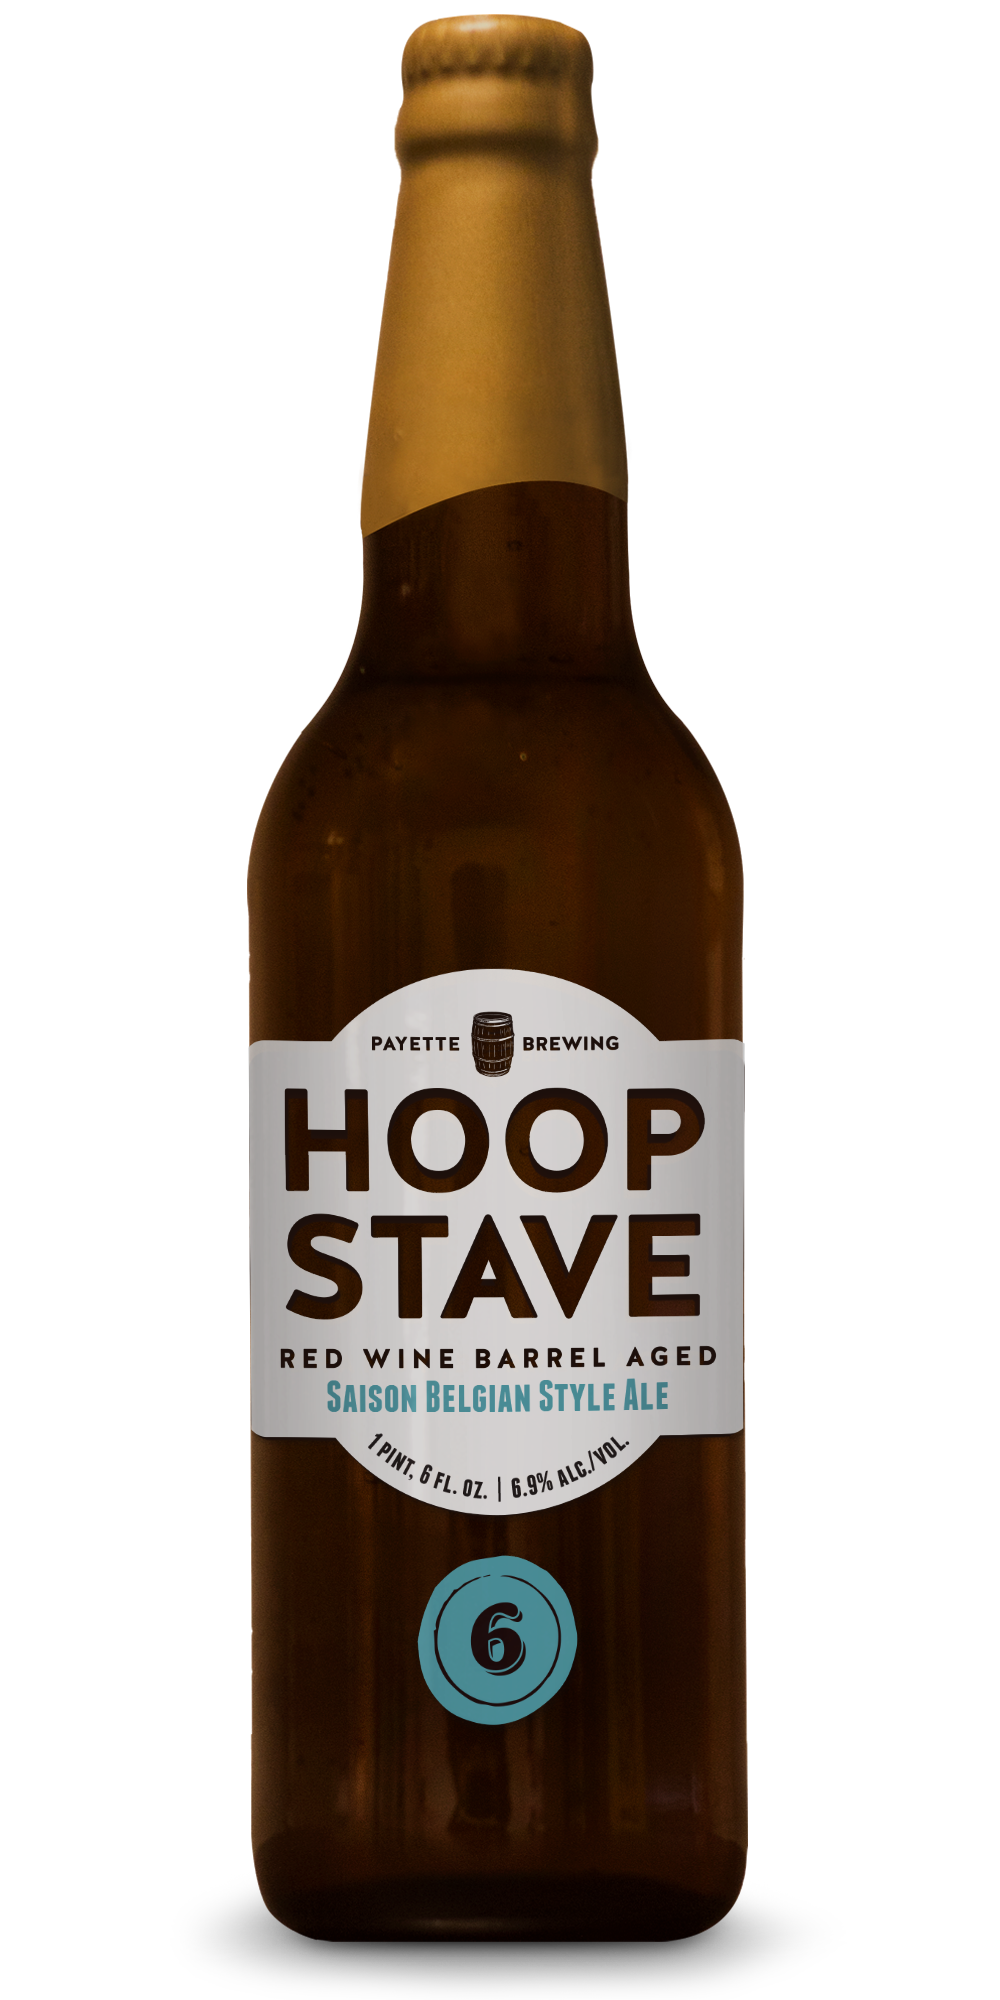 Website_BeerPage_Hoop&Stave6.png